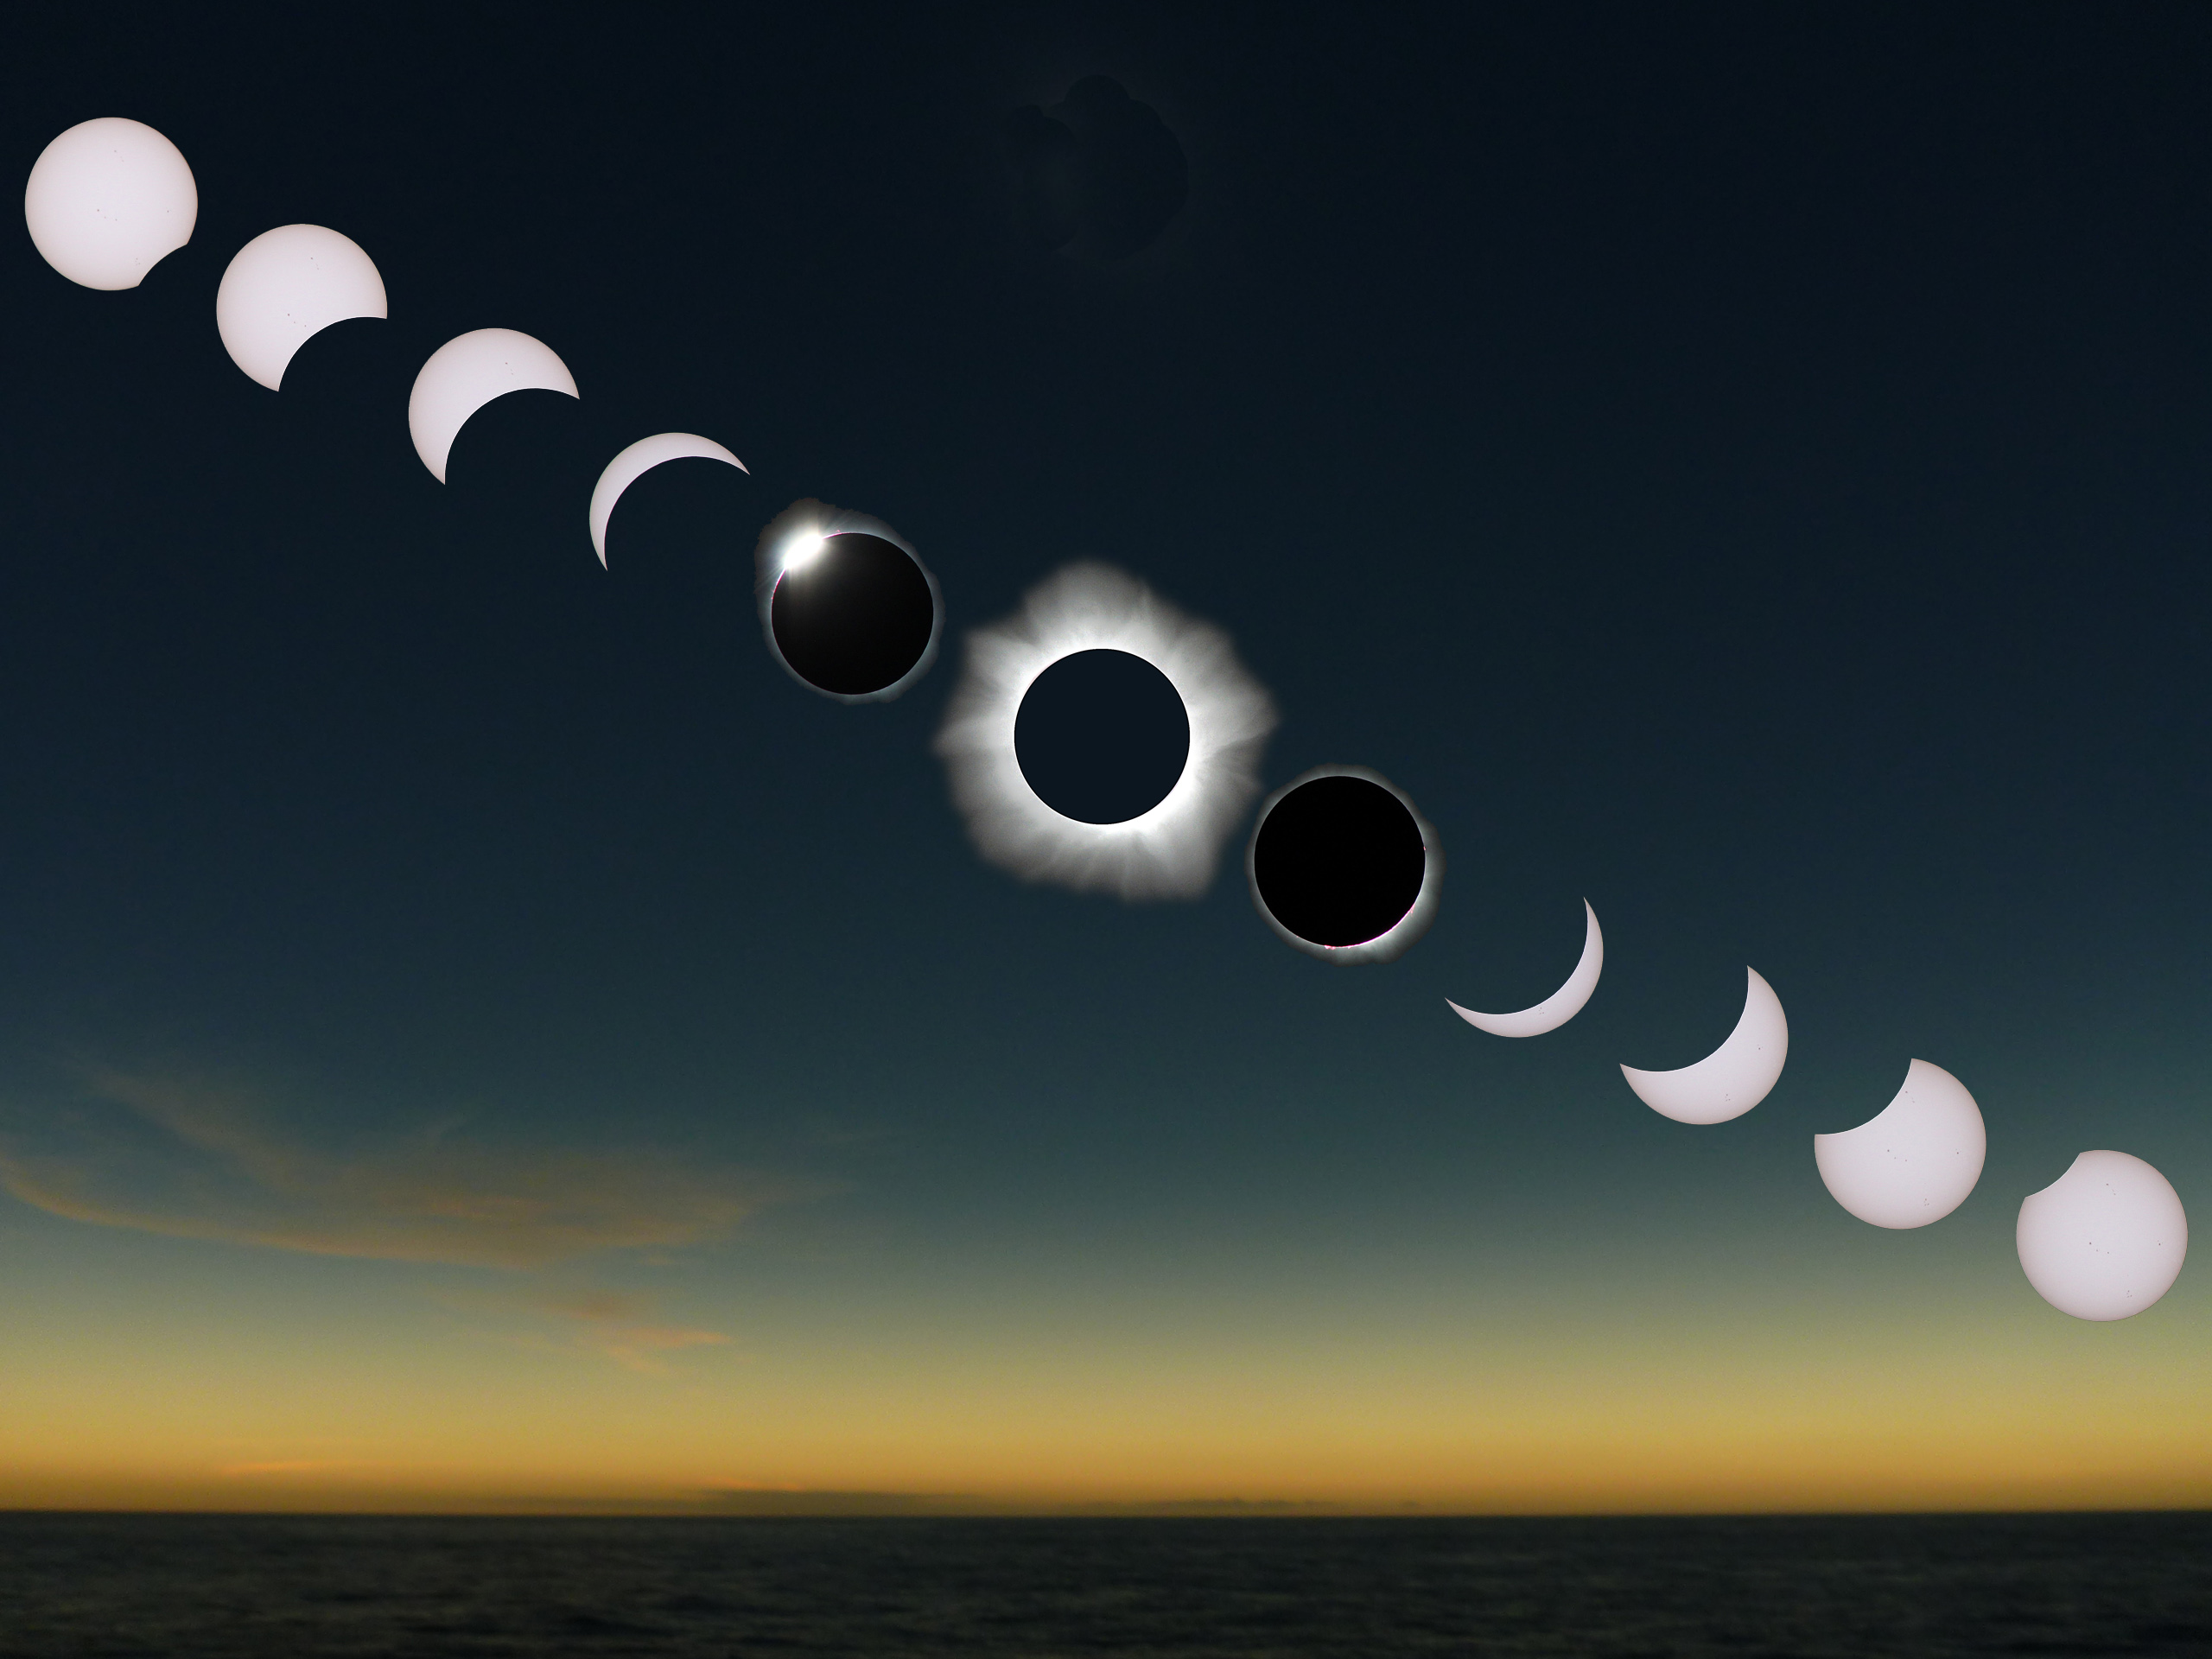 image of total solar eclipse